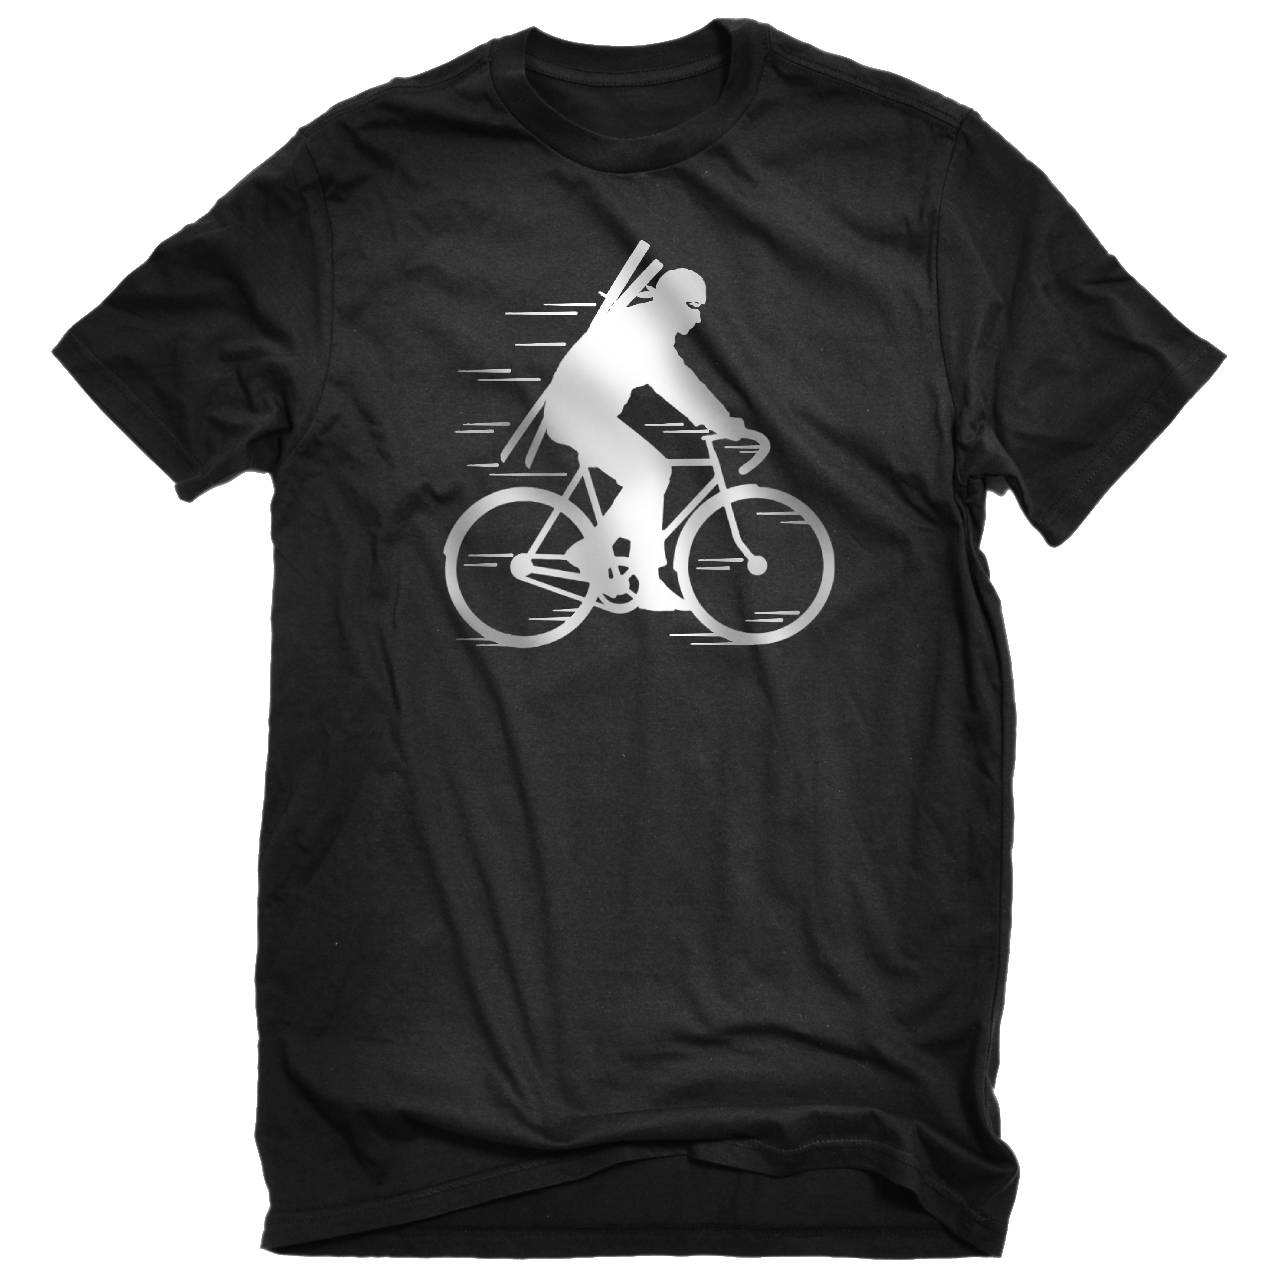 "PRE-ORDER Limited Edition ""NINJA RIDER"" T + Free Reflective Decal"